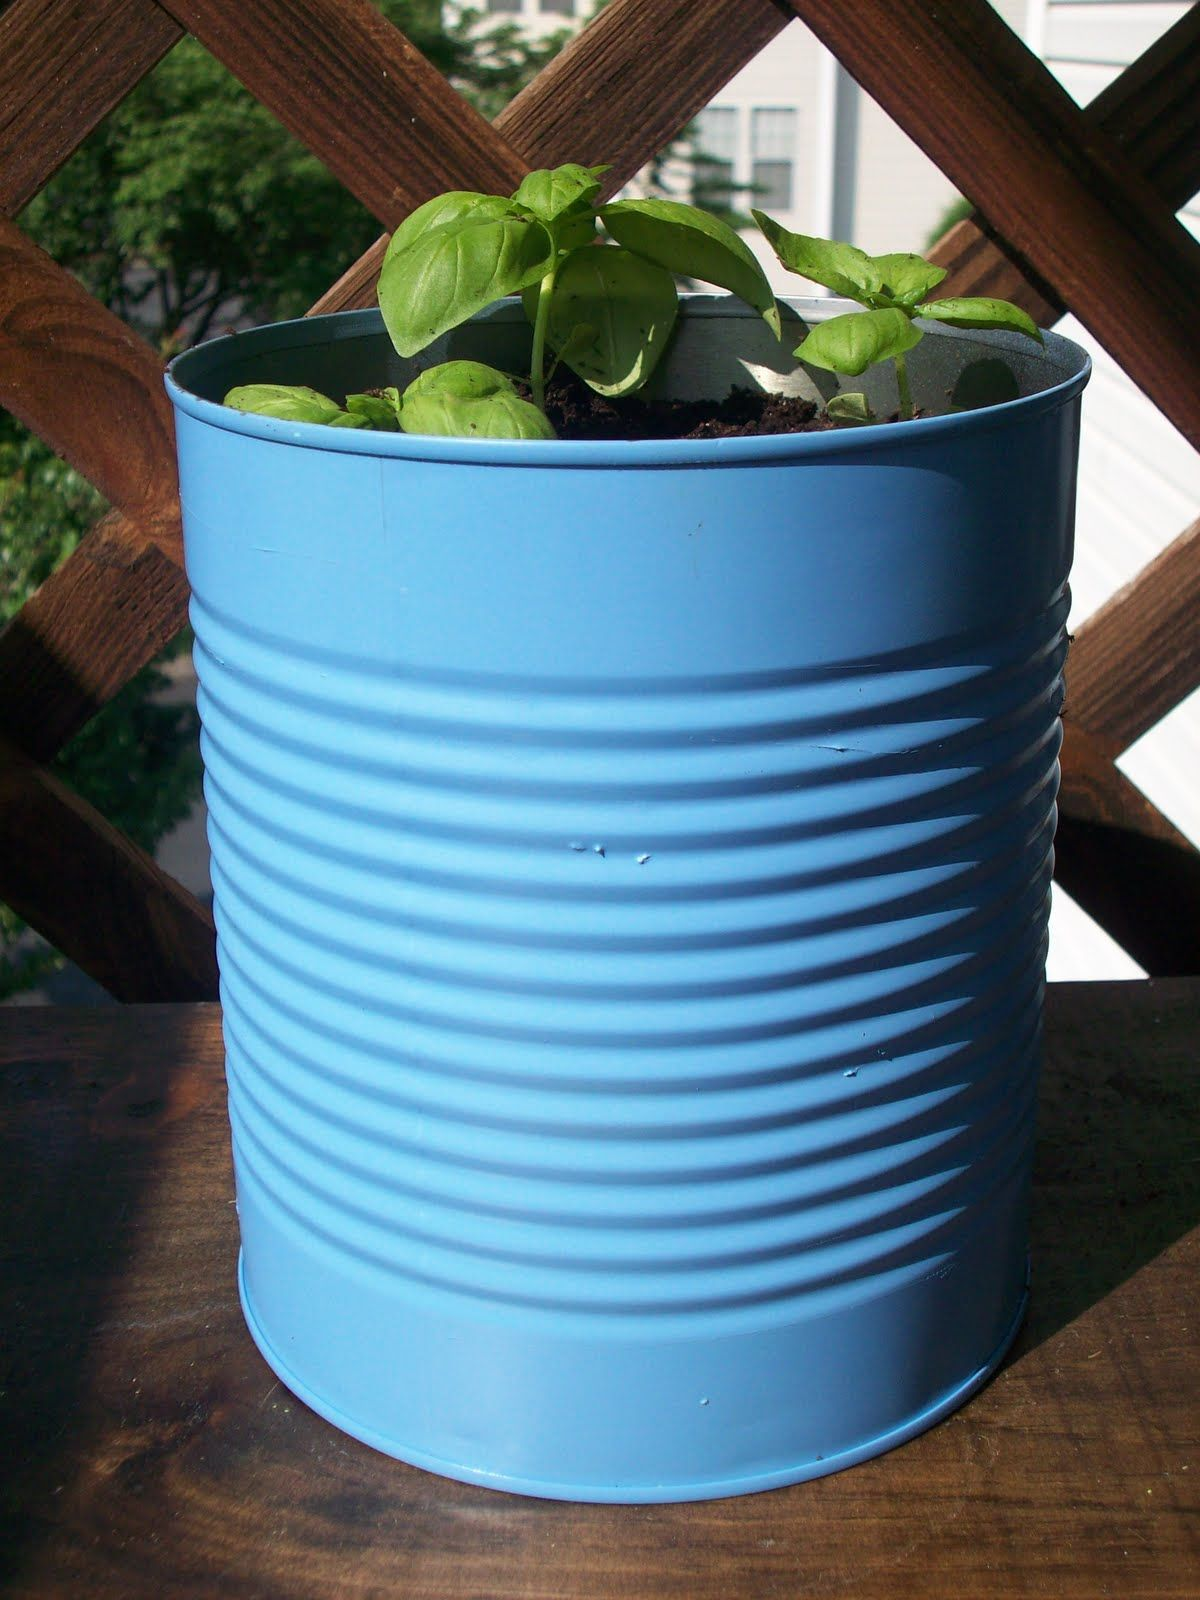 Spray paint tin cans u plant herbs for windowsill garden growing